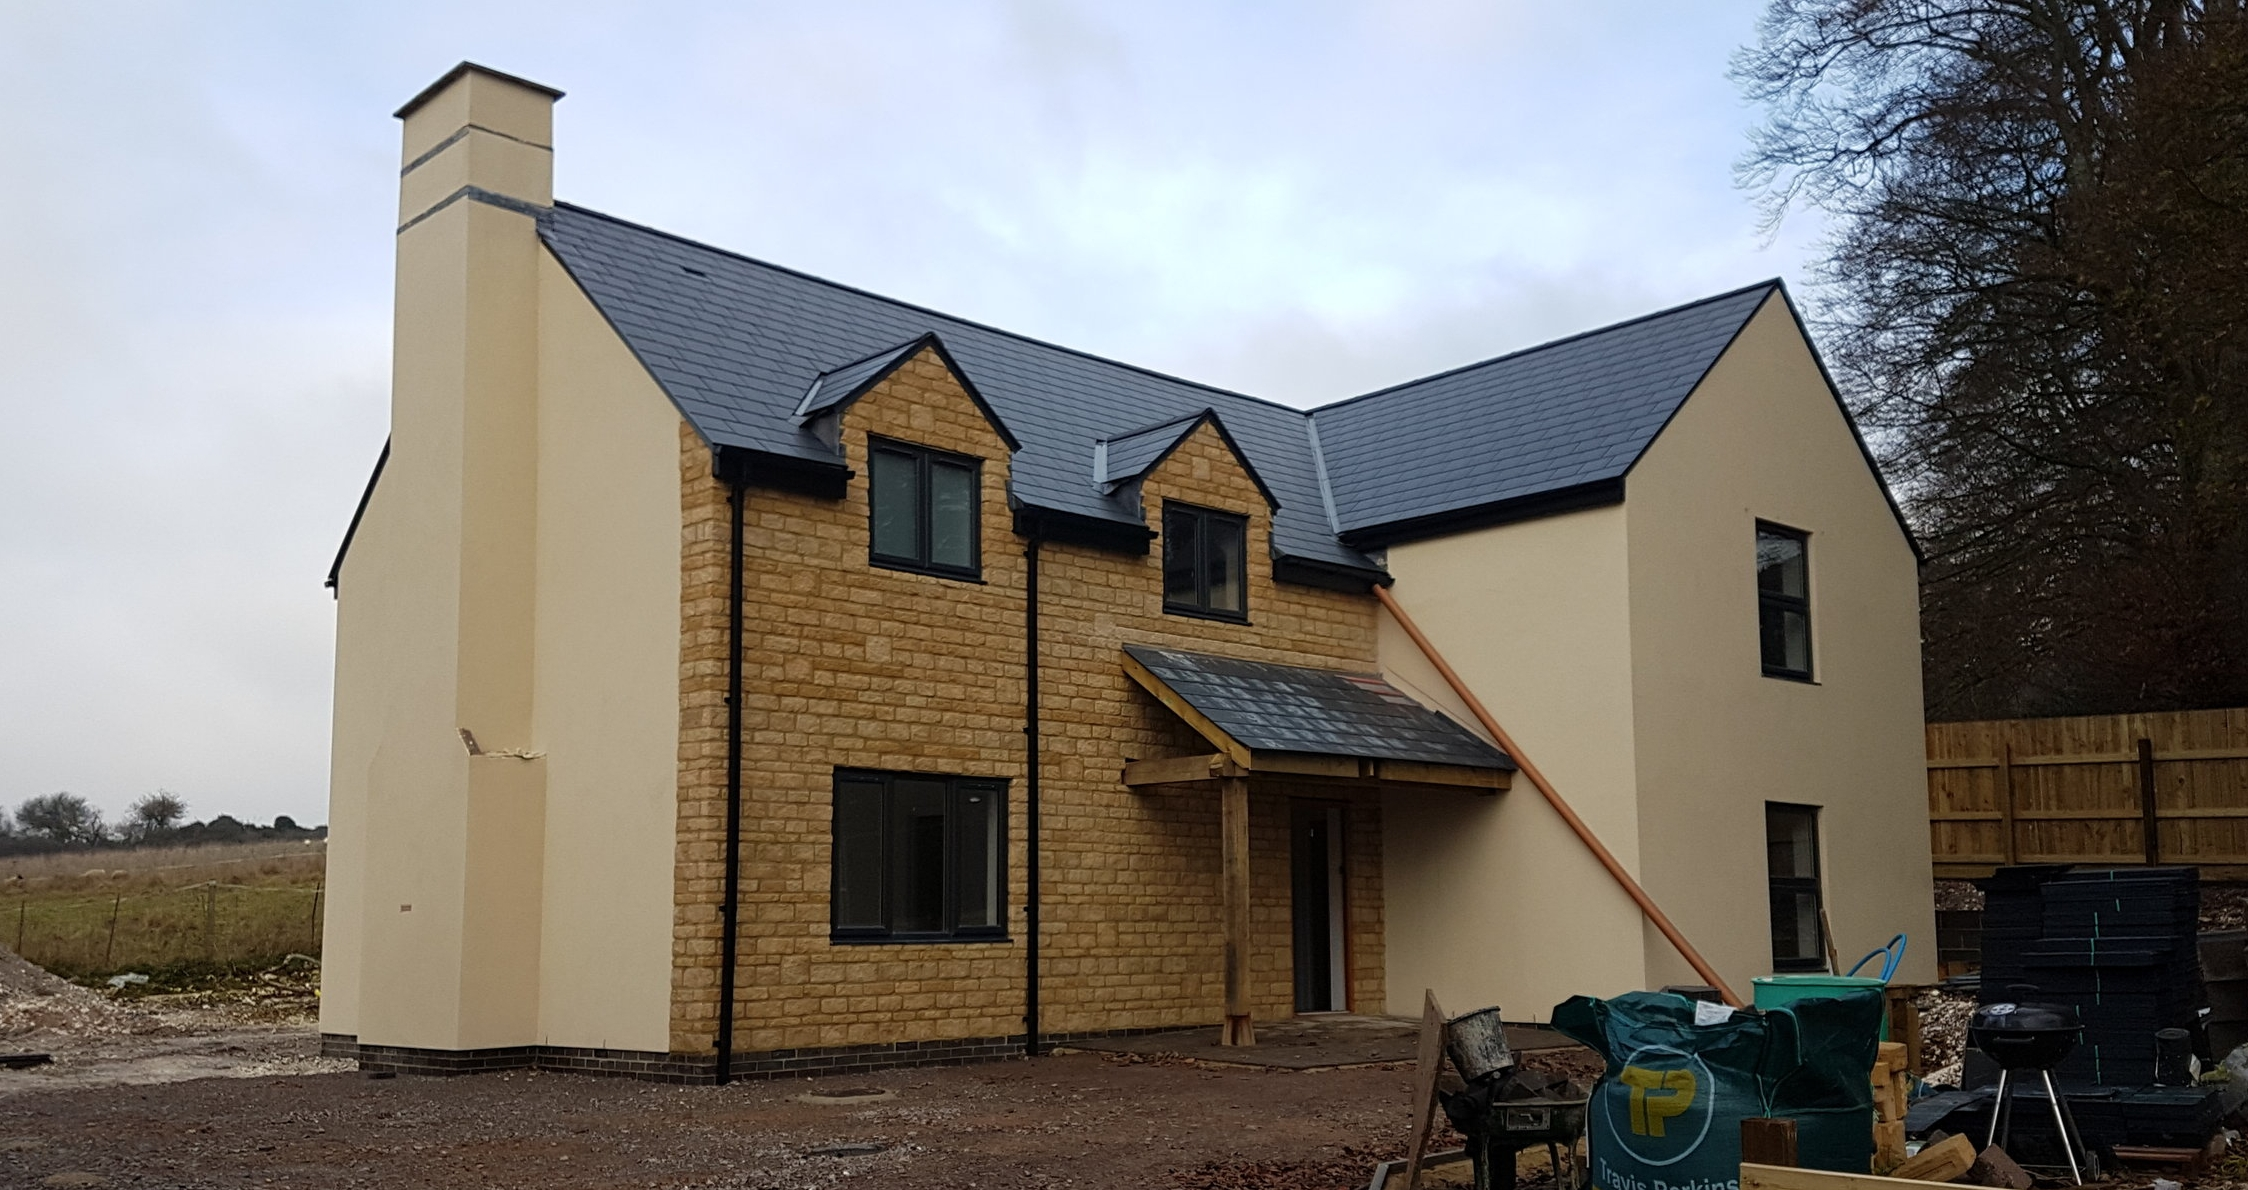 Works to a new dwelling at Charminster, Dorset to be completed in the next few months.